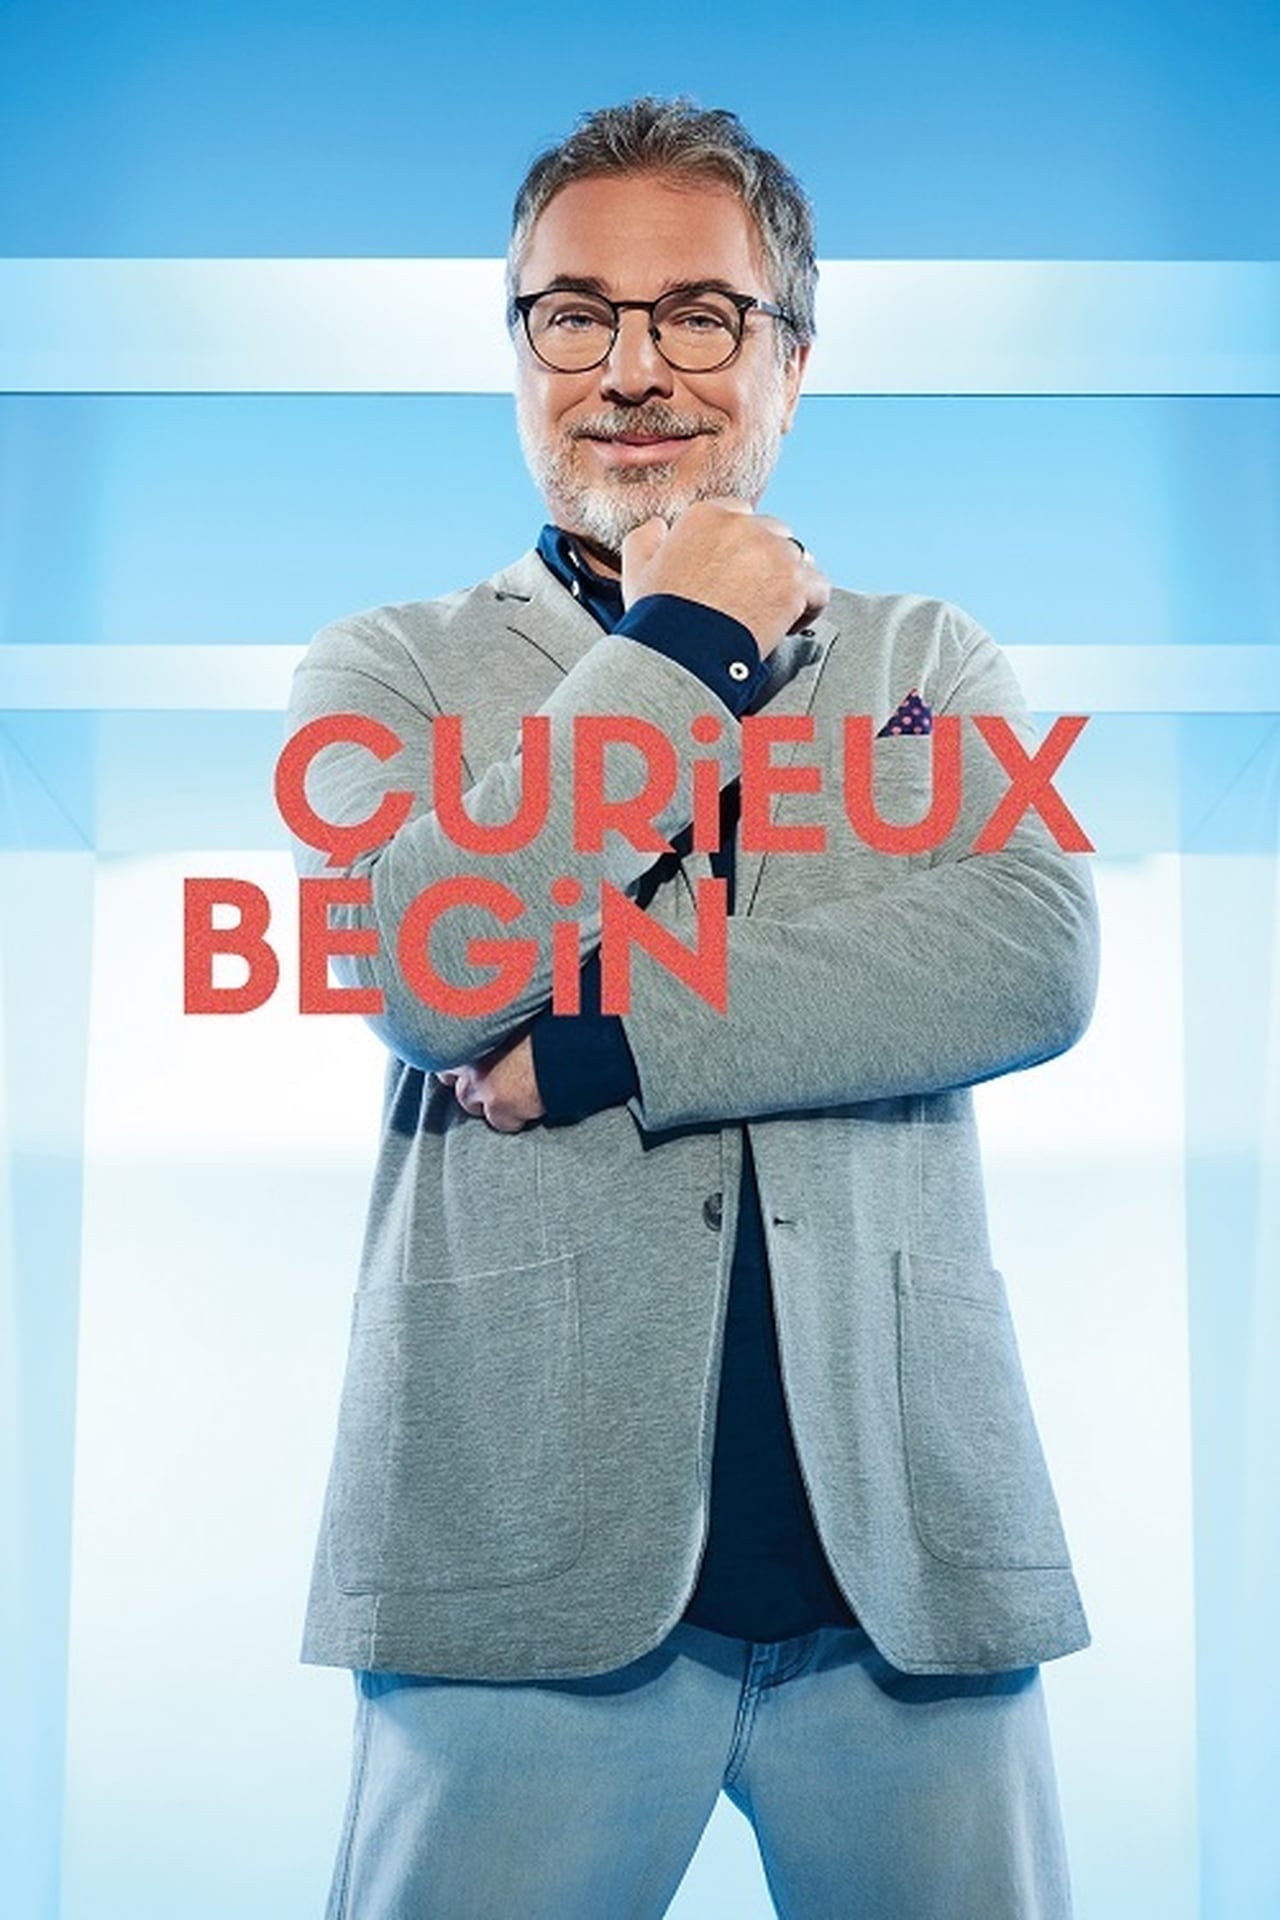 Putlocker Curieux Bégin Season 8 (2015)